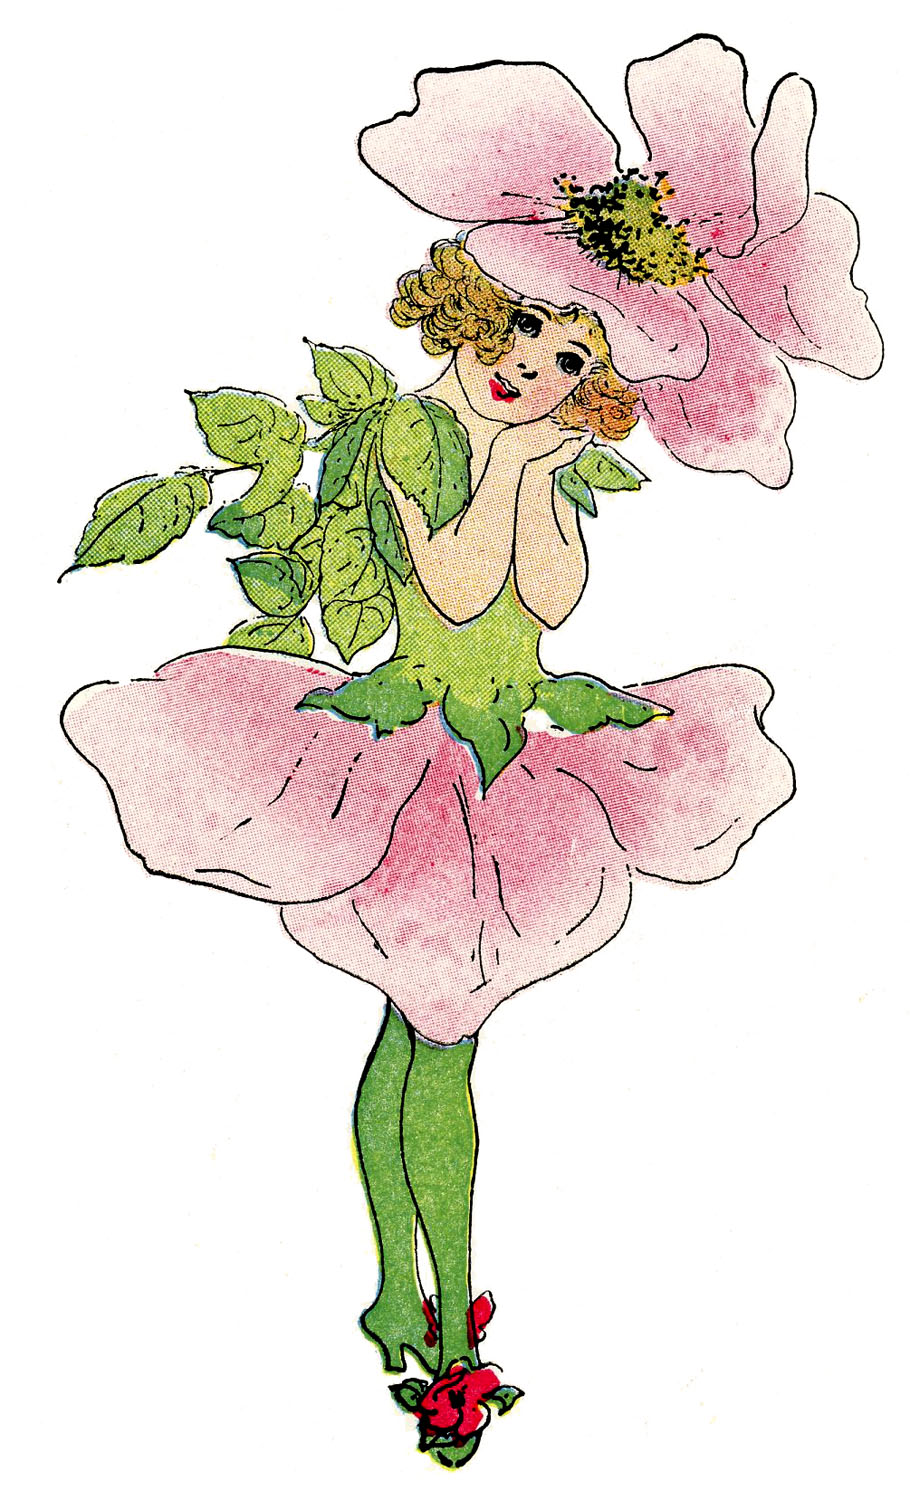 Vintage Fairy Image - Rose Flower Girl - The Graphics Fairy